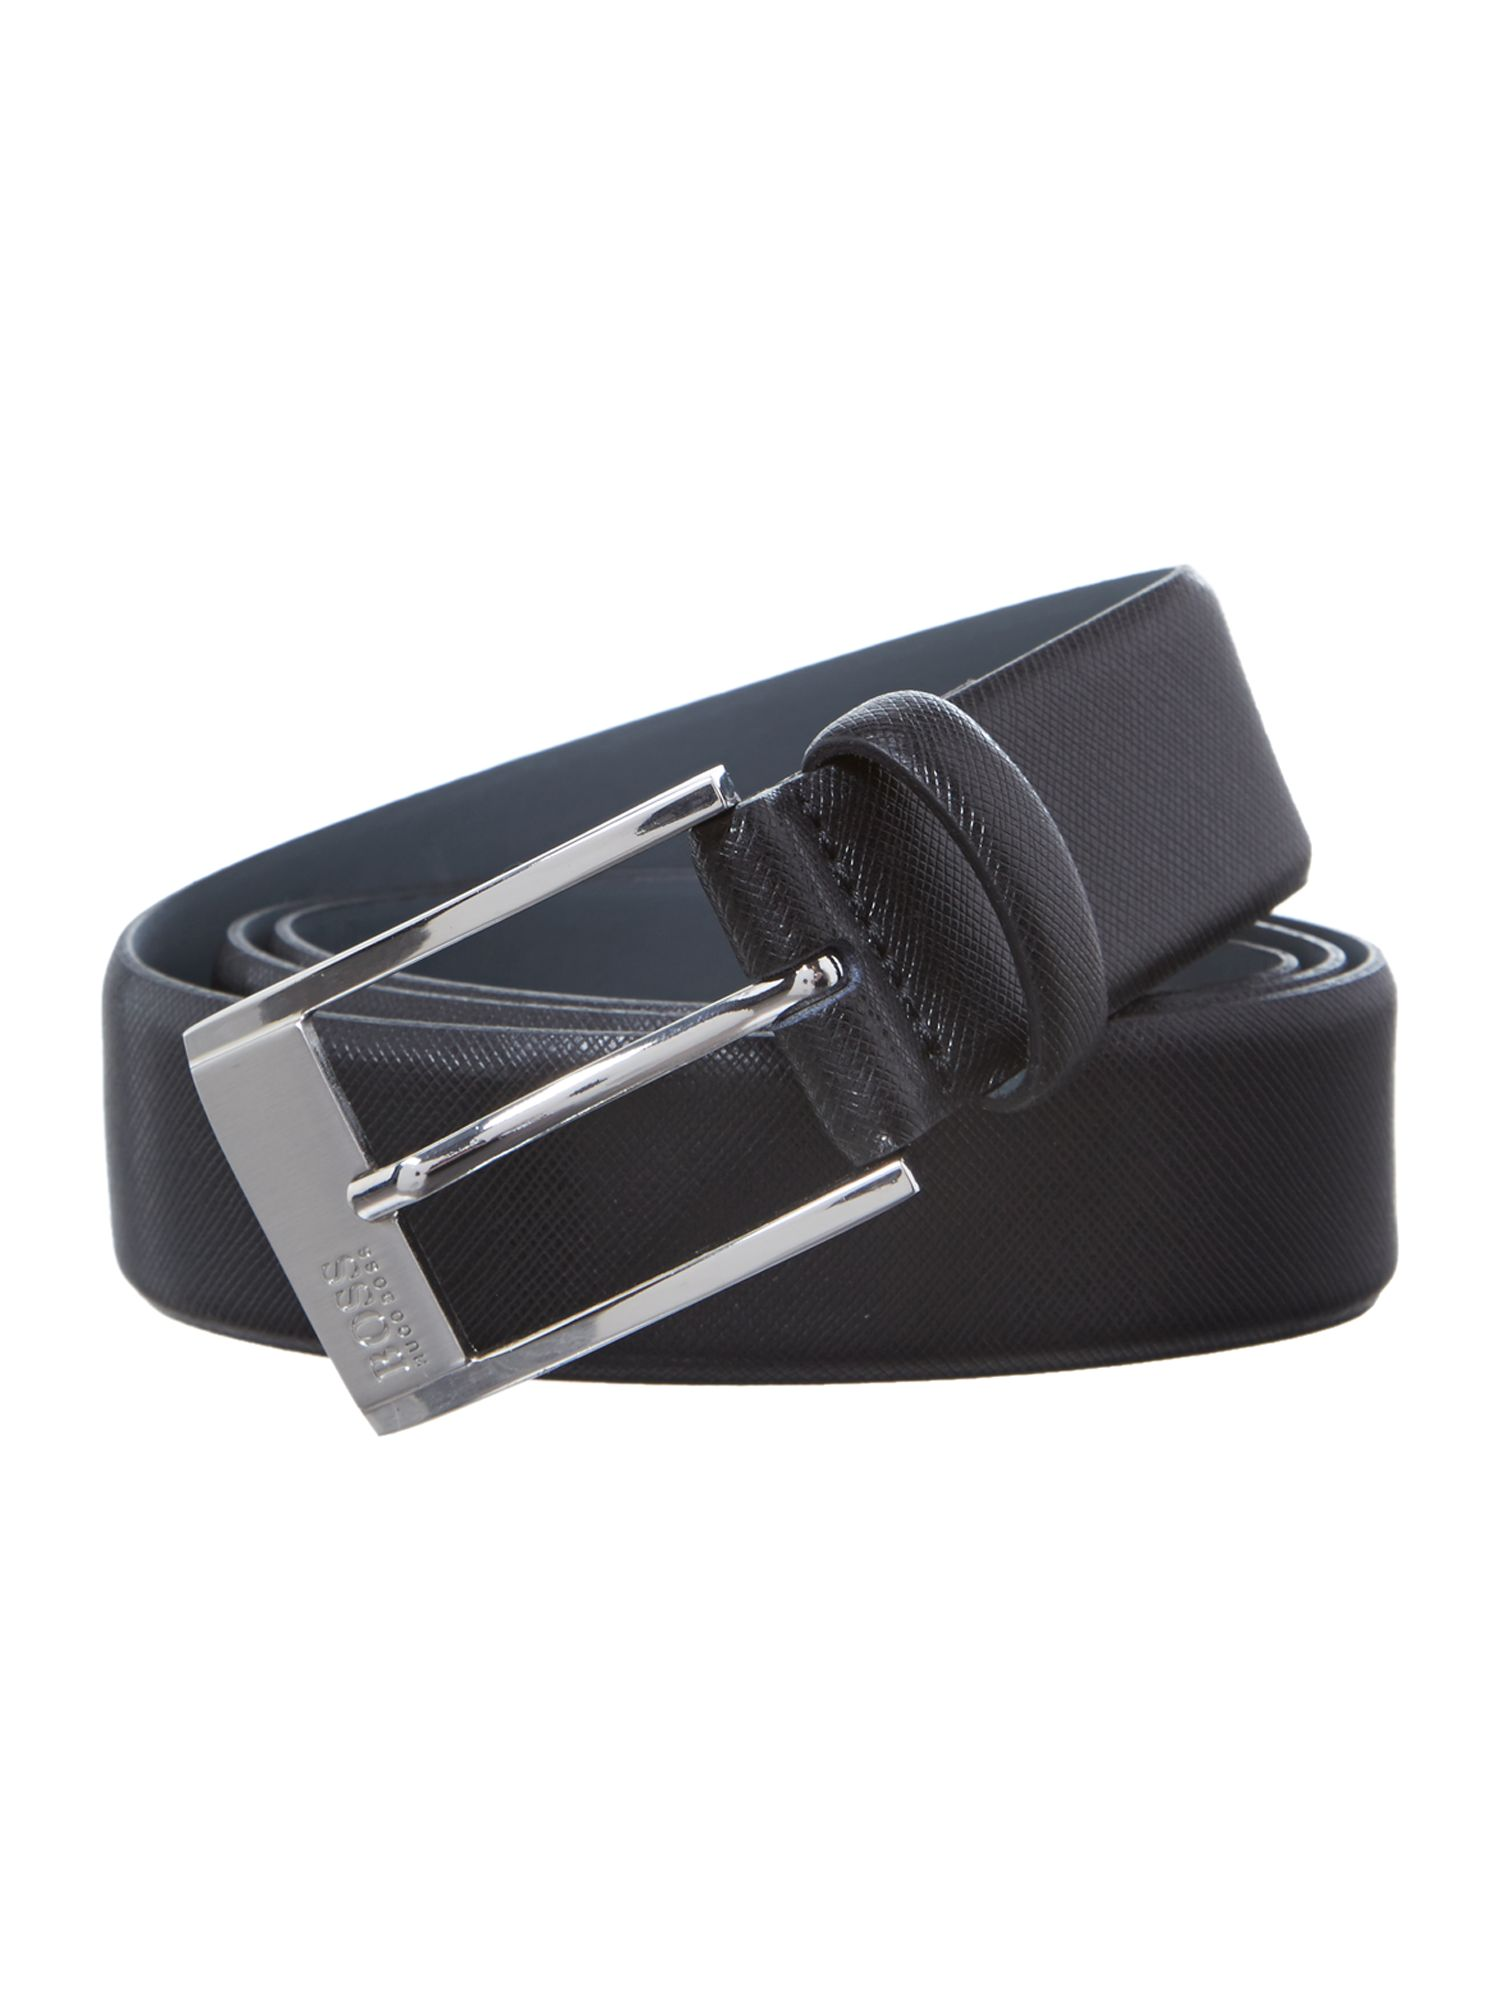 Ellot textured belt